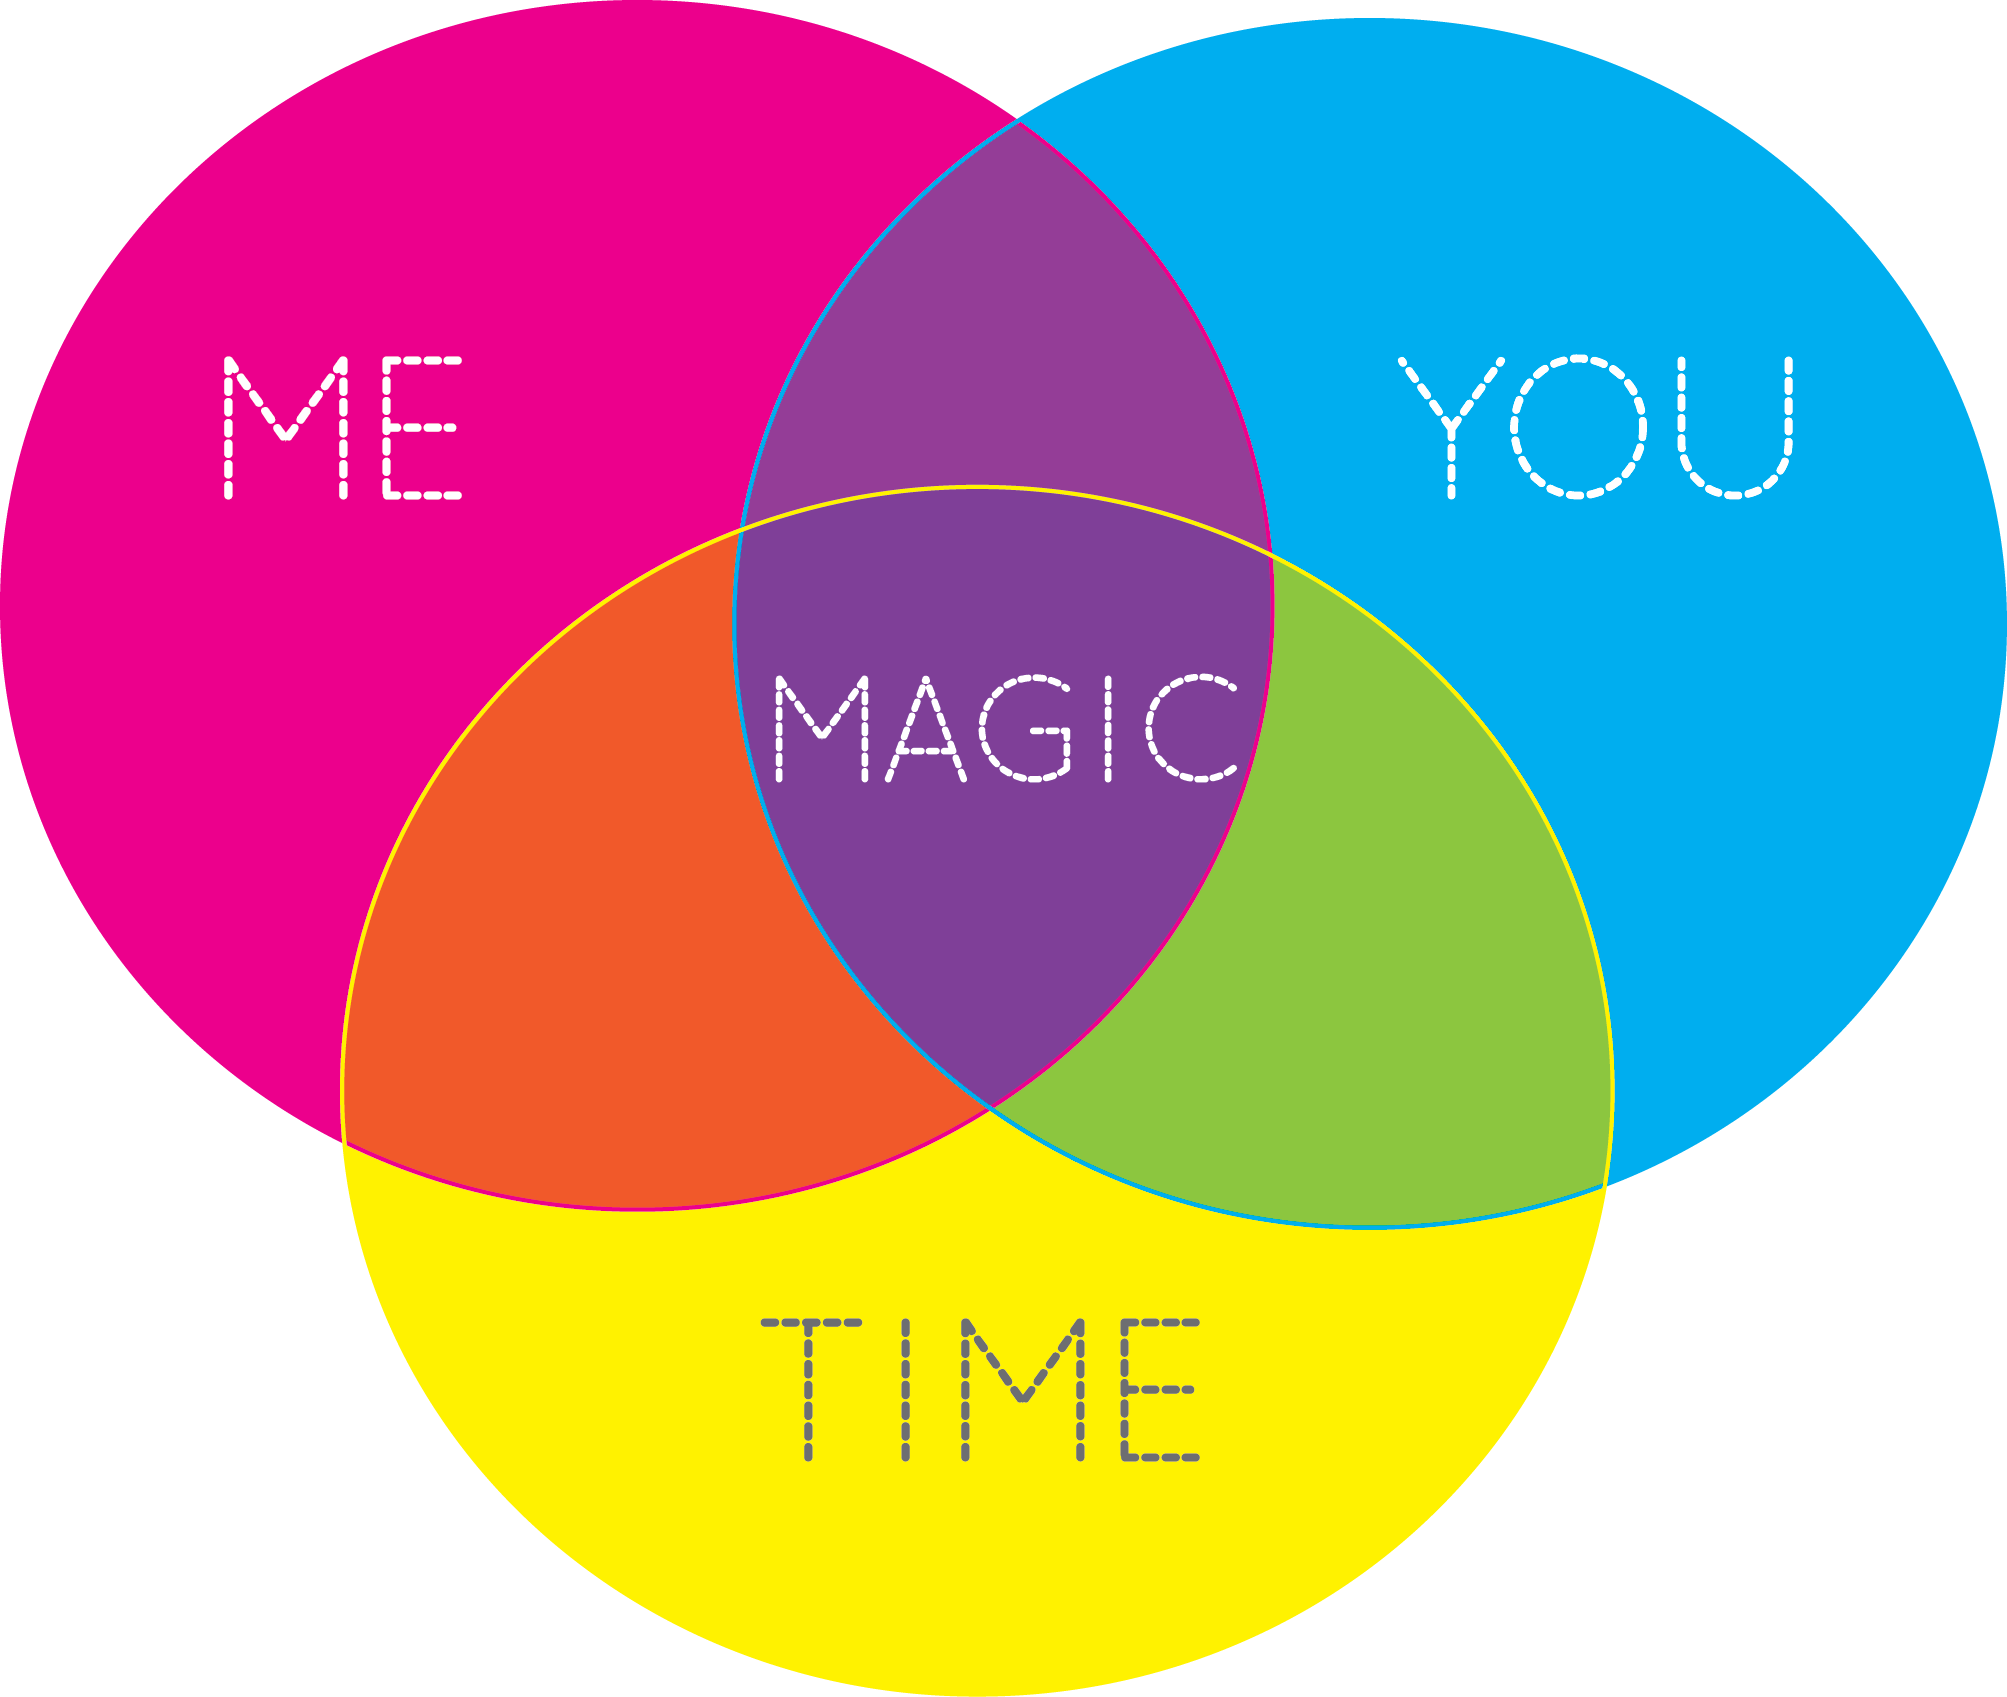 Hsing + You + Time = Magic. Hsing's Venn Diagram with You